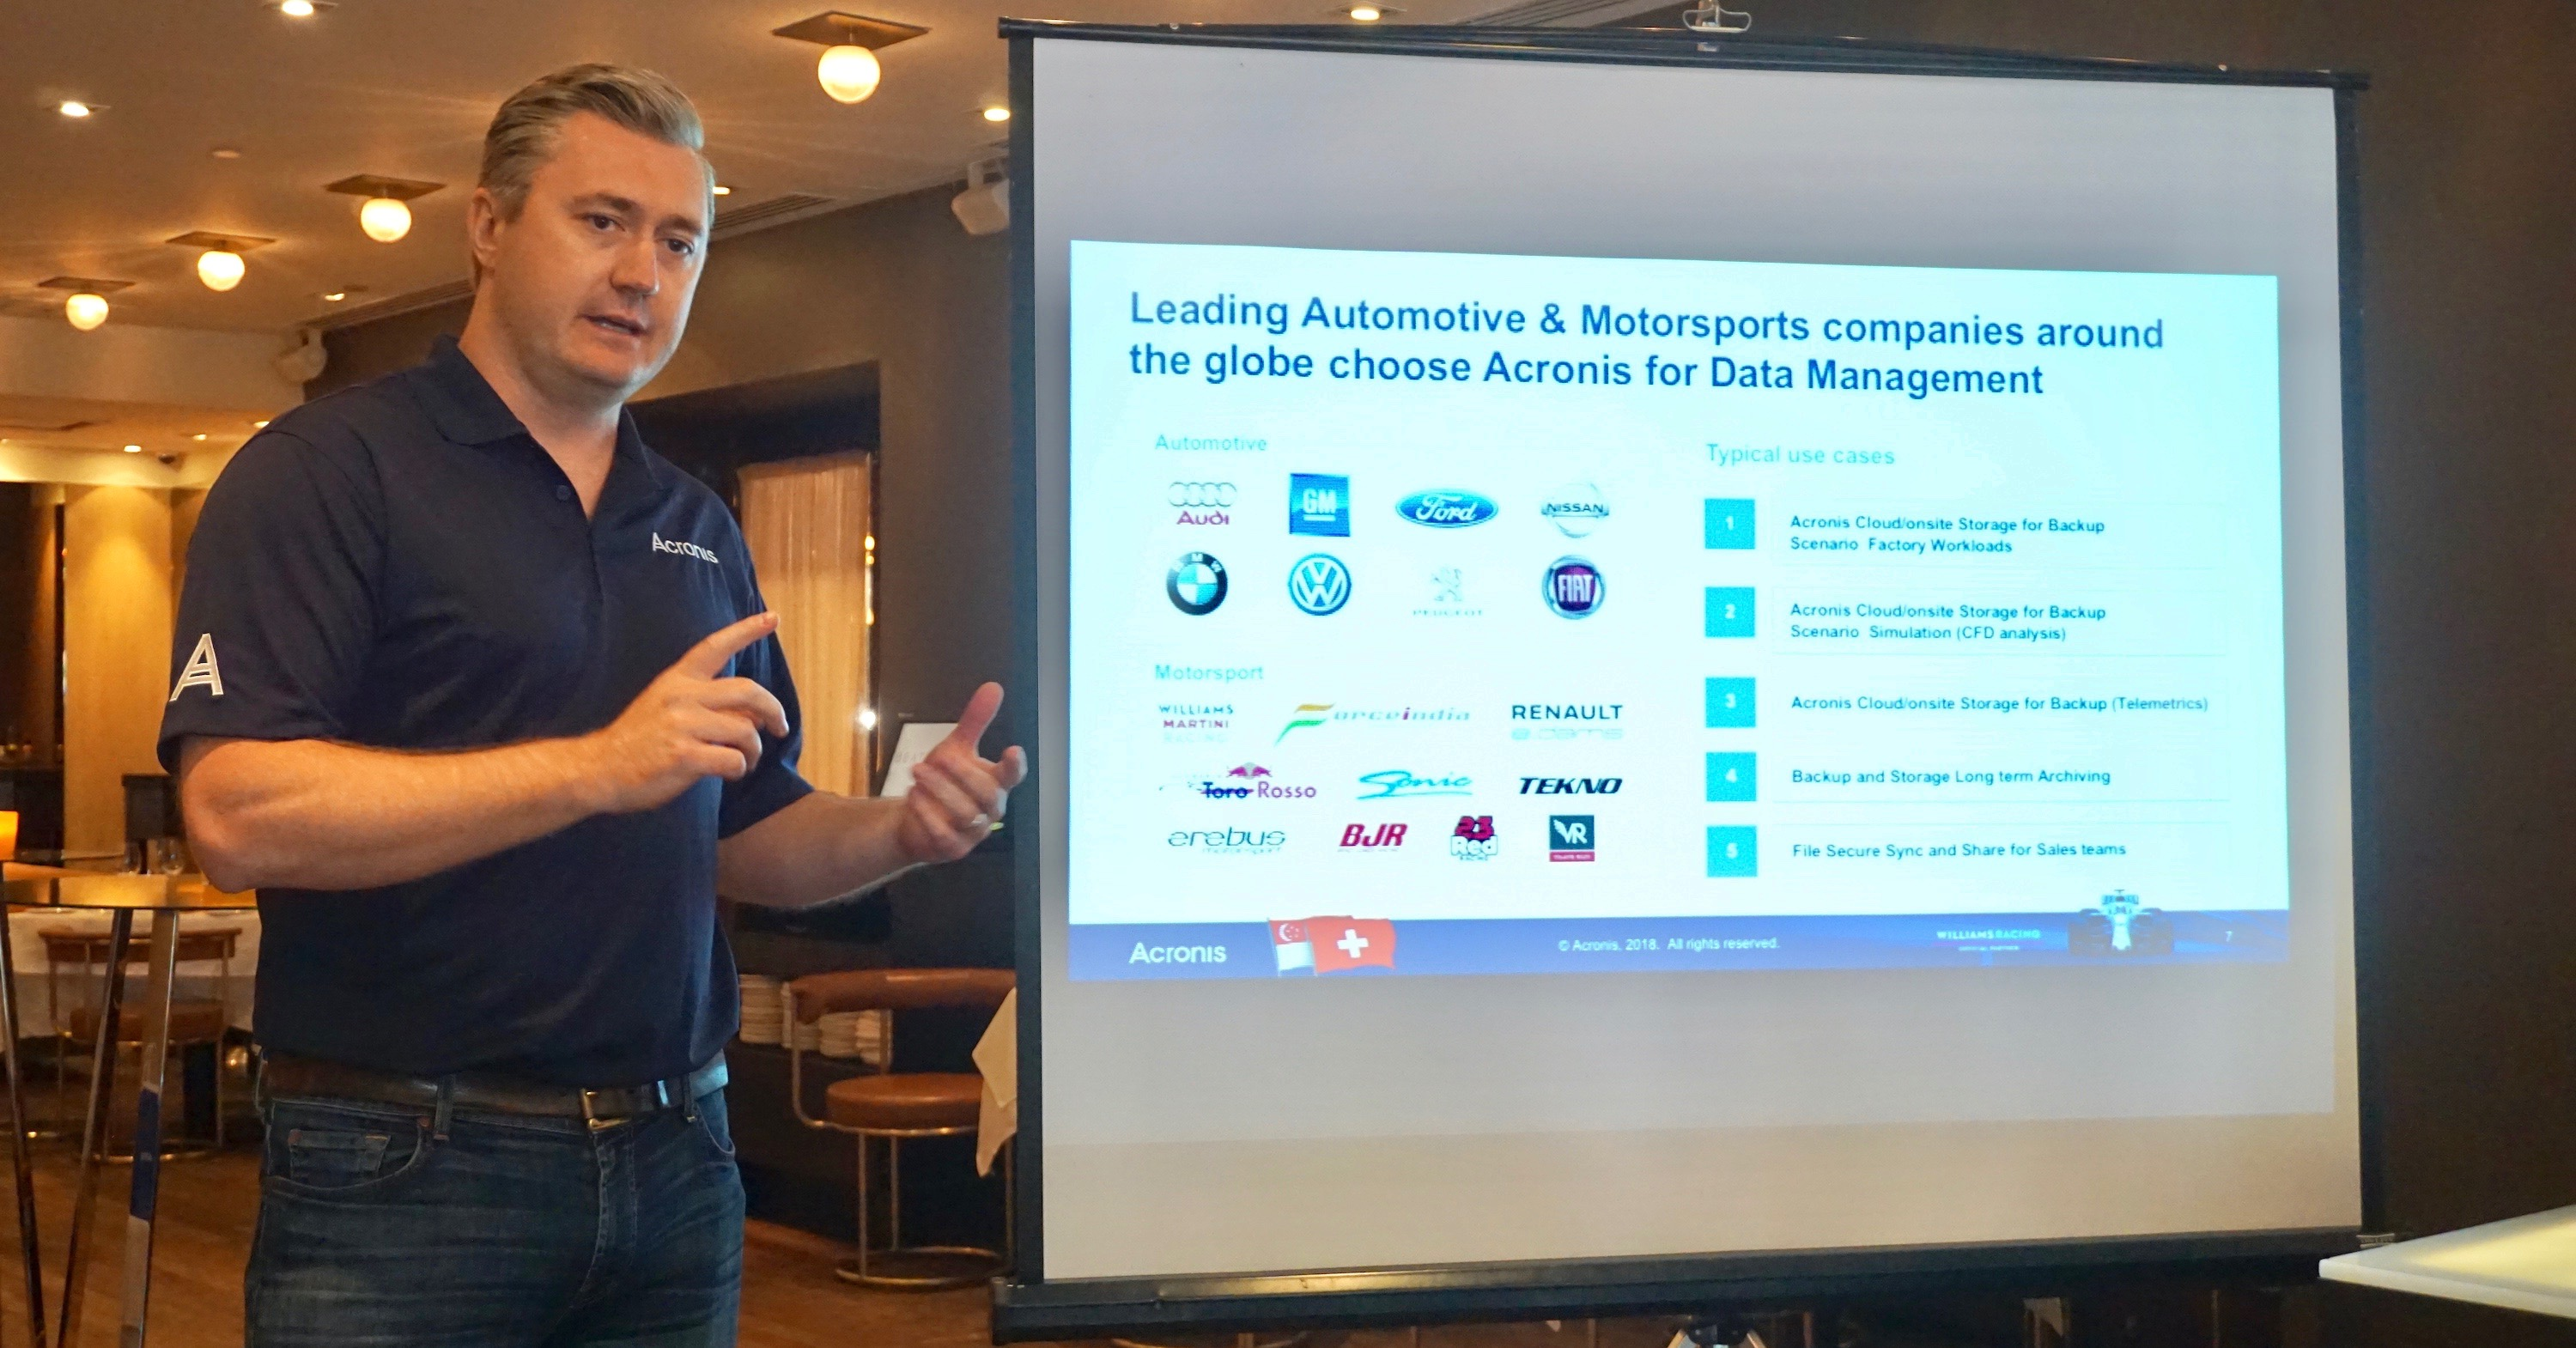 Patrick Hurley, VP and GM Americas at Acronis, explains the benefits of Acronis cyber protection.